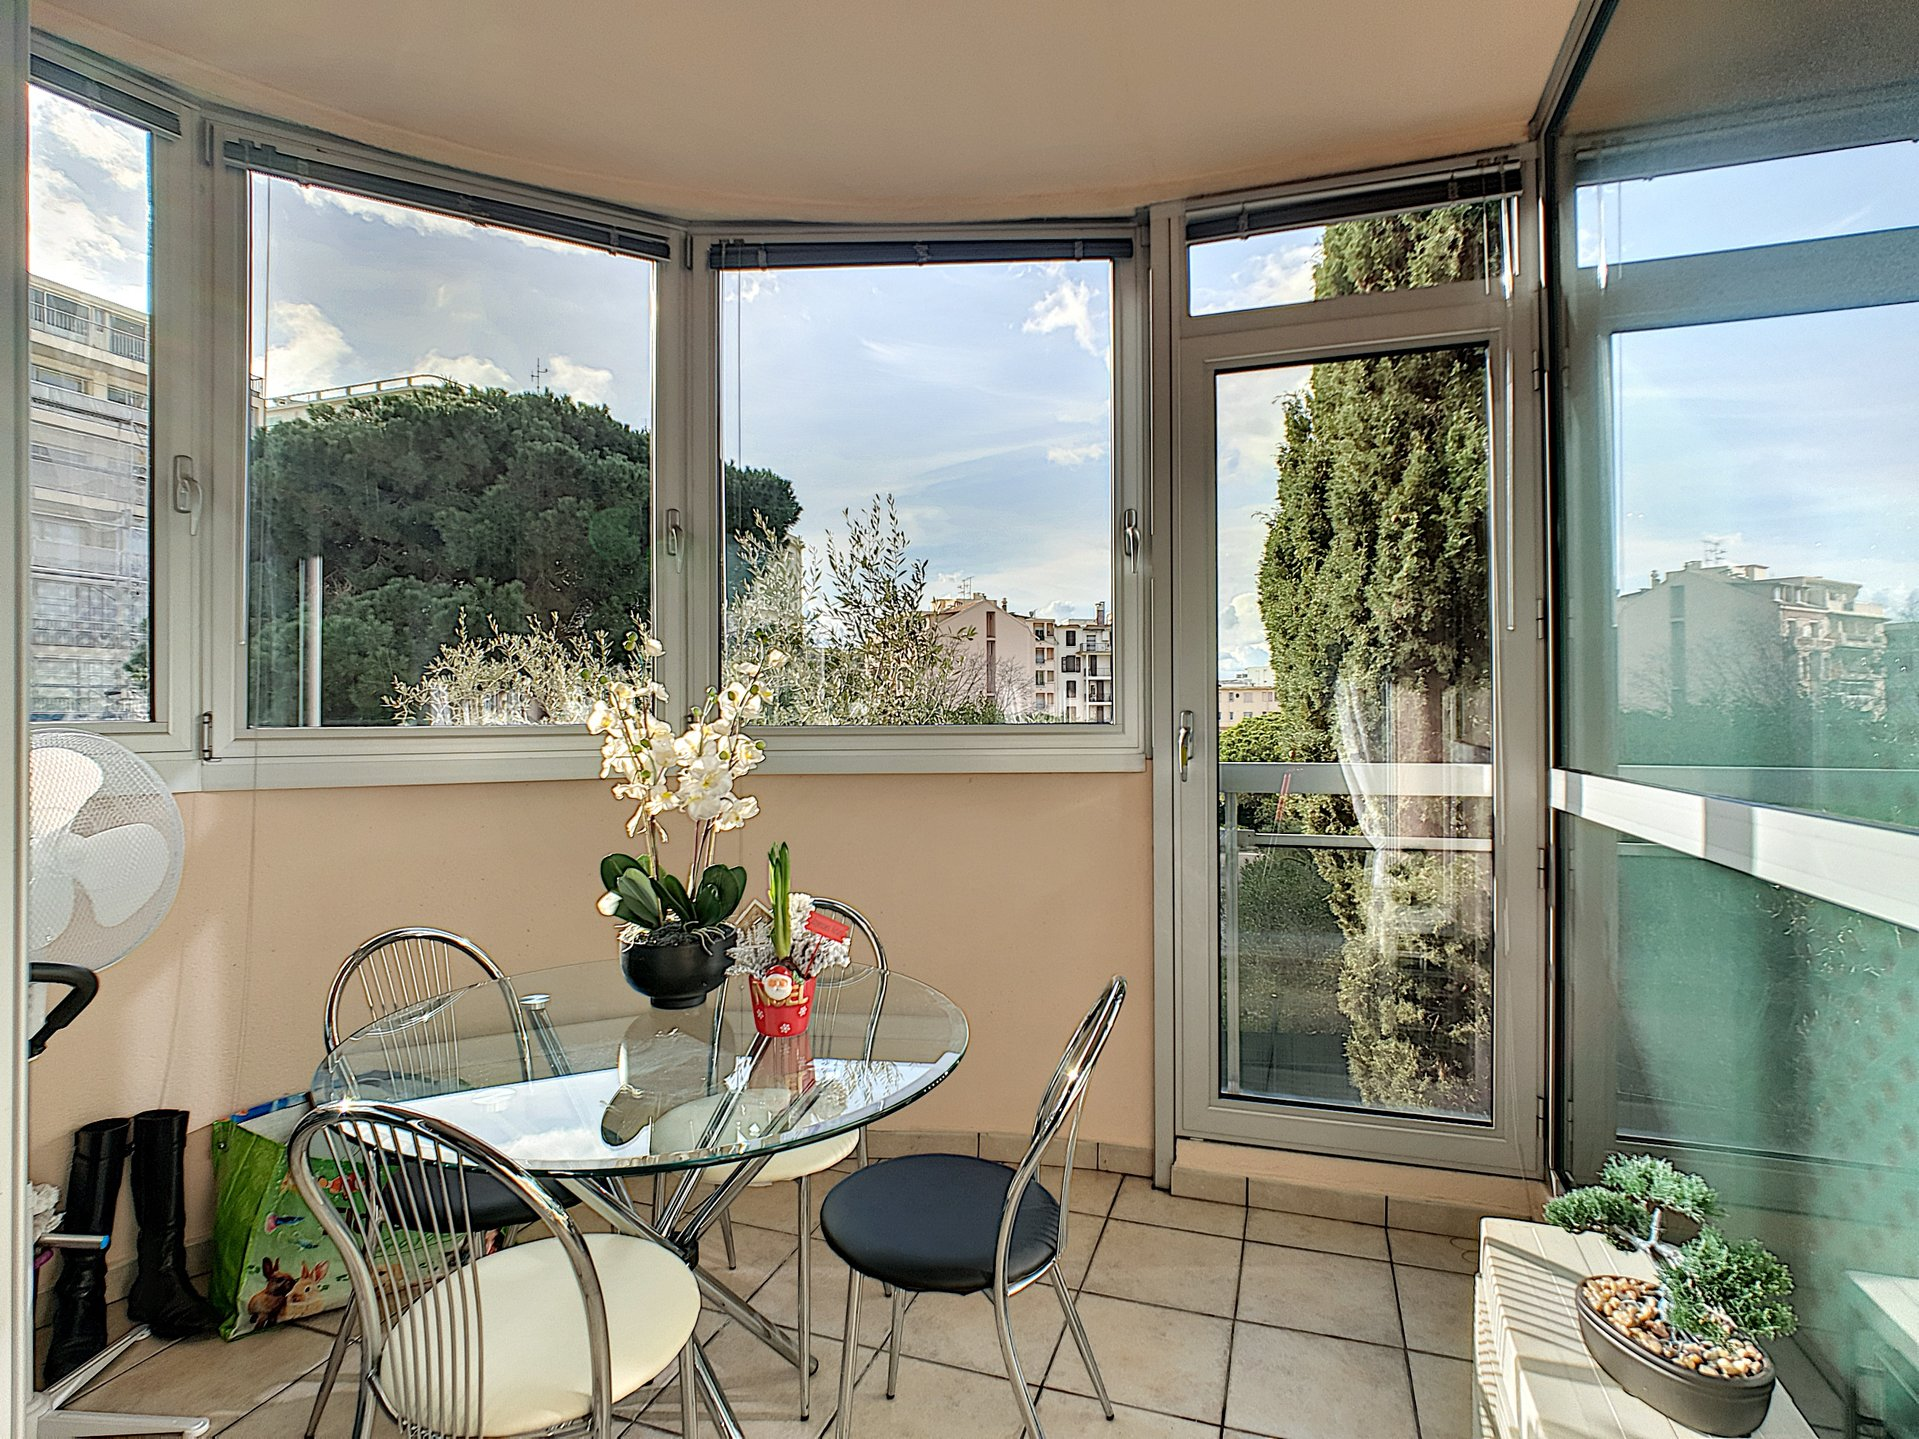 Cannes property for sale in Basse Calfifornie